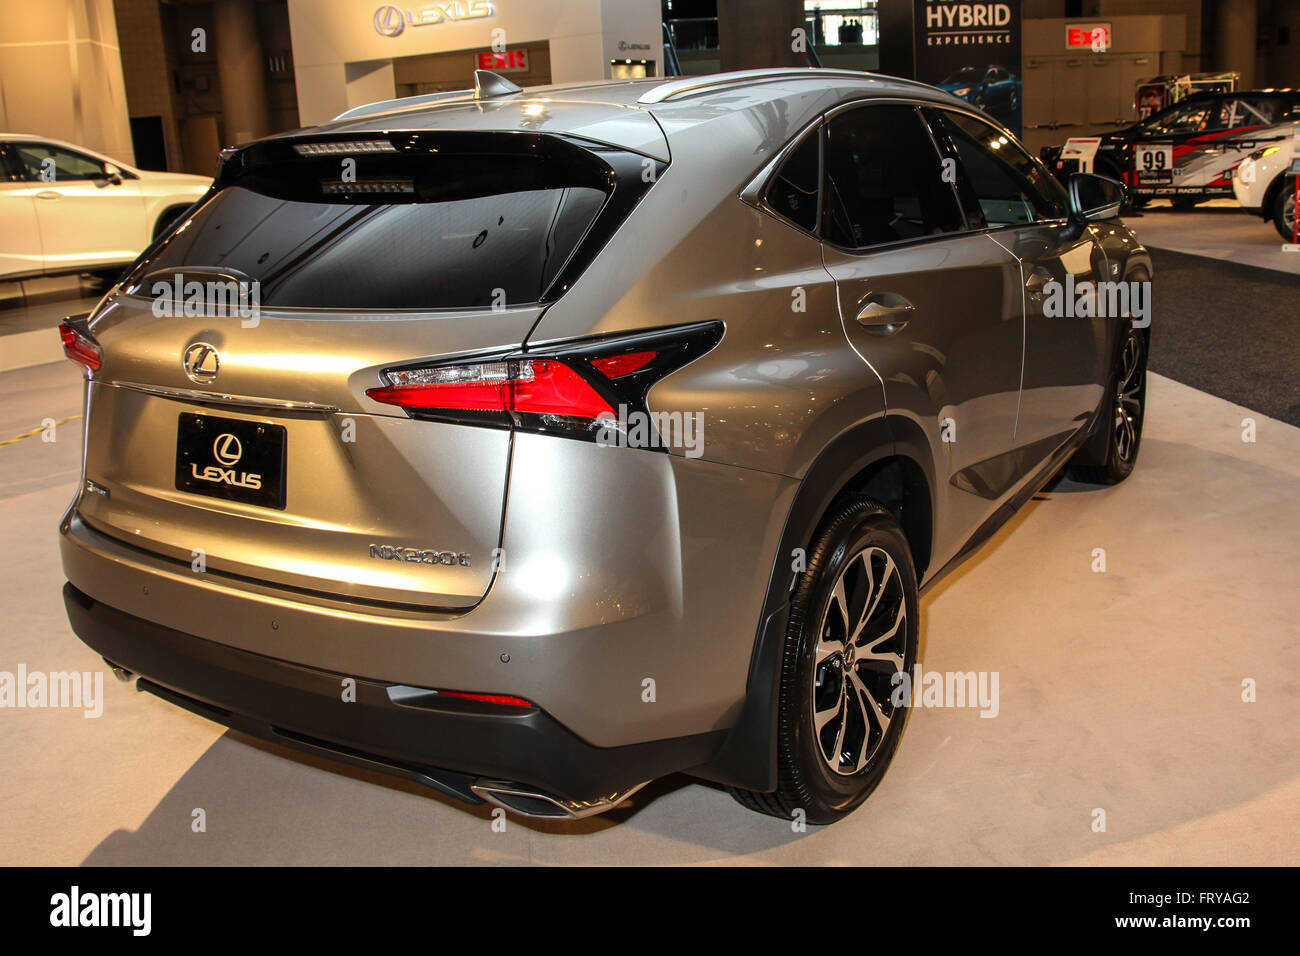 manhattan new york usa 23rd mar 2016 a lexus nx 200t shown at stock photo alamy alamy